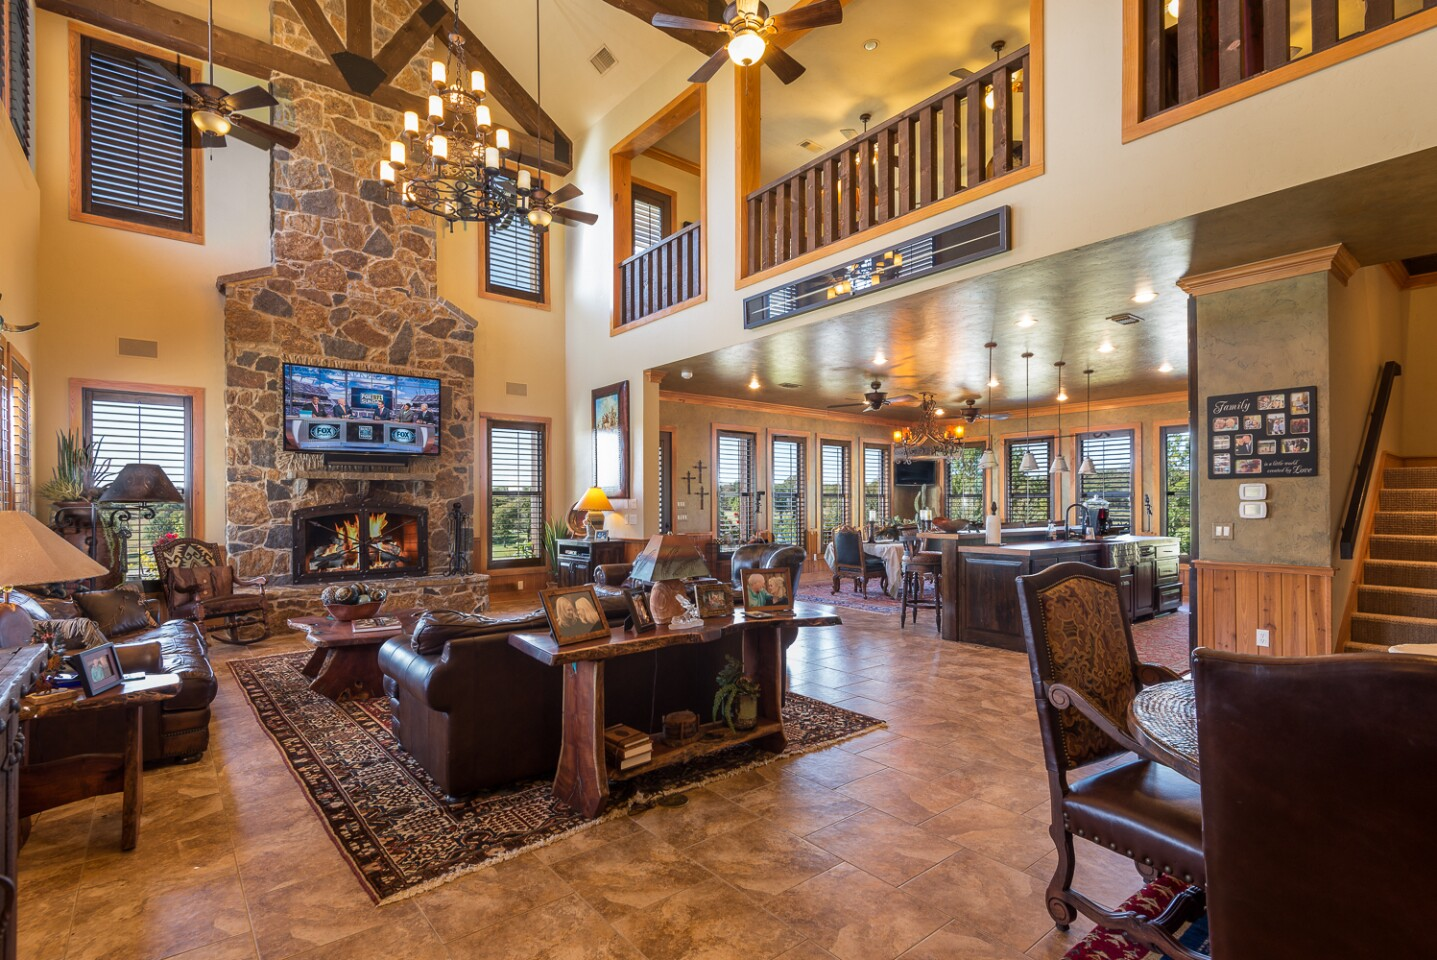 The fully operational cattle and horse ranch holds an 8,600-square-foot home, an entertainer's patio with a pool, five horse barns, eight lakes and ponds and an office with a kitchen.